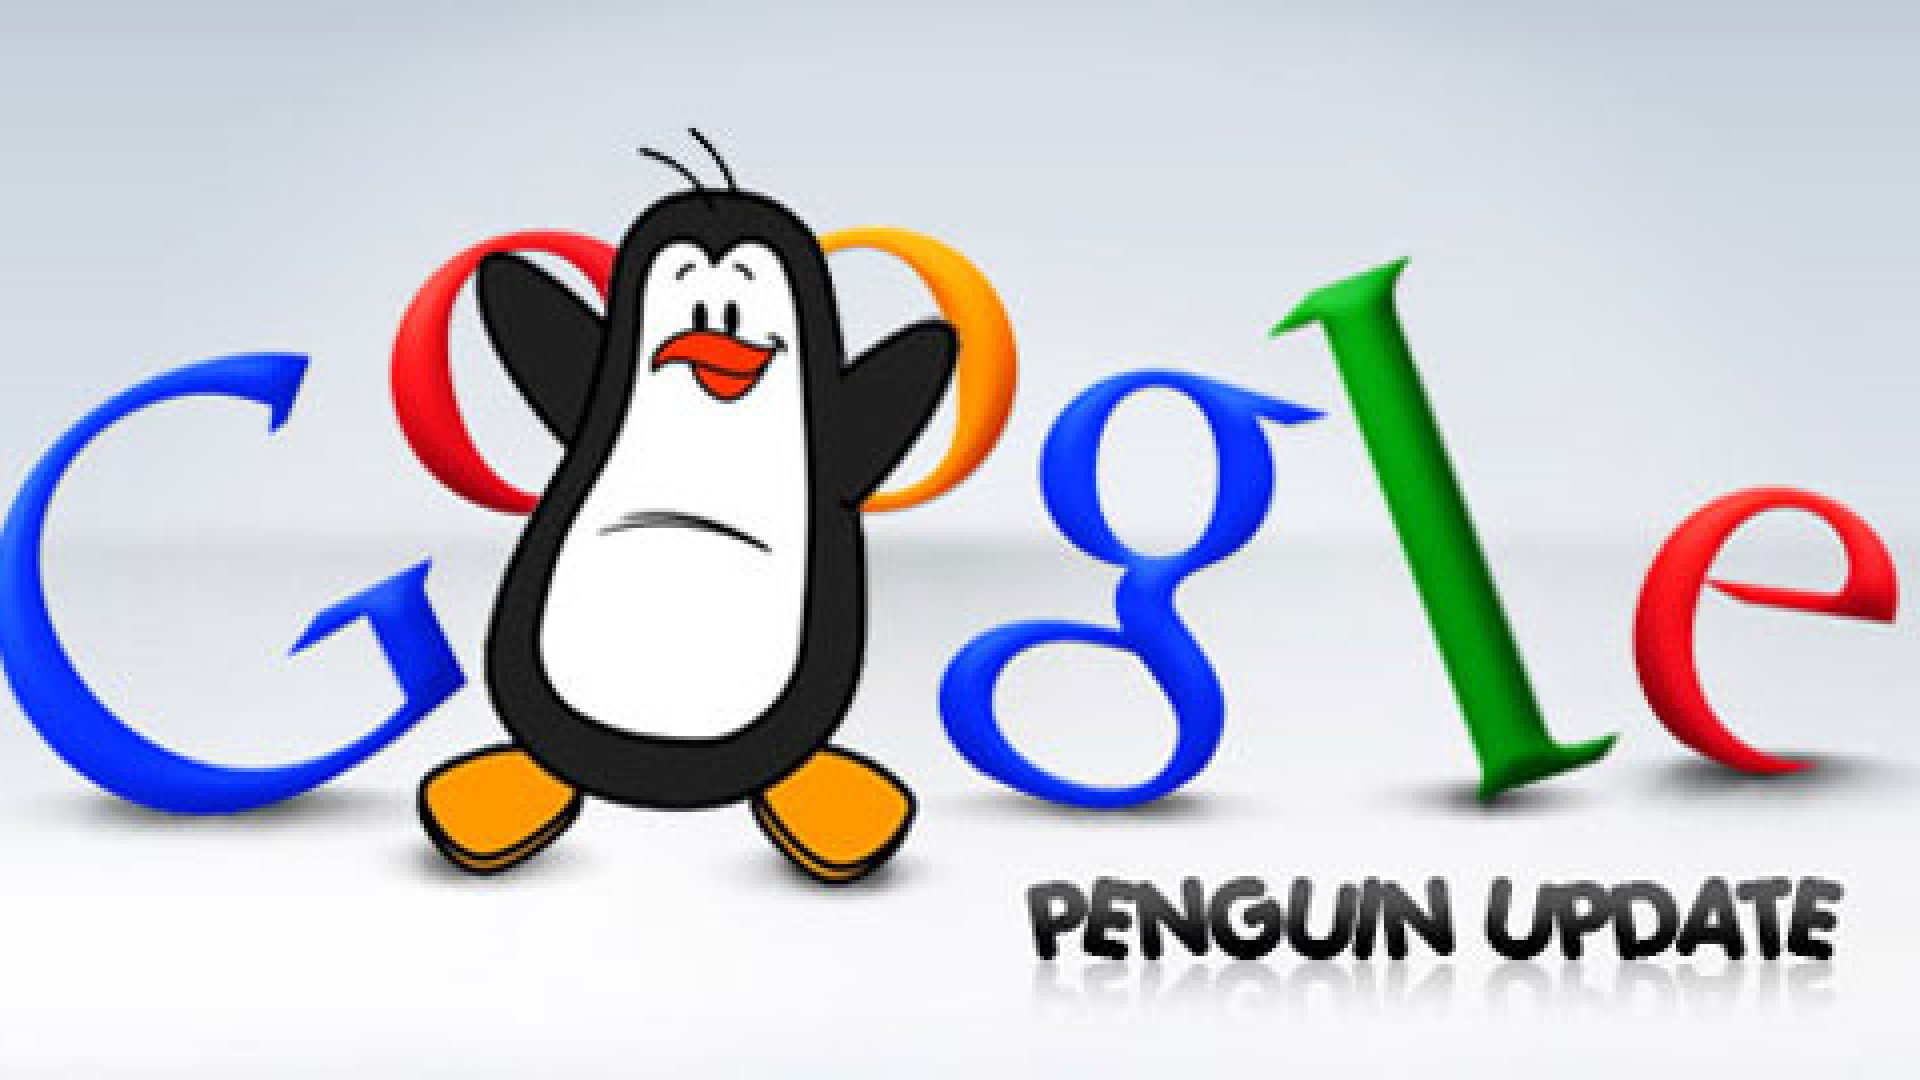 Google's Penguin 2.0 Update: What You Need to Know